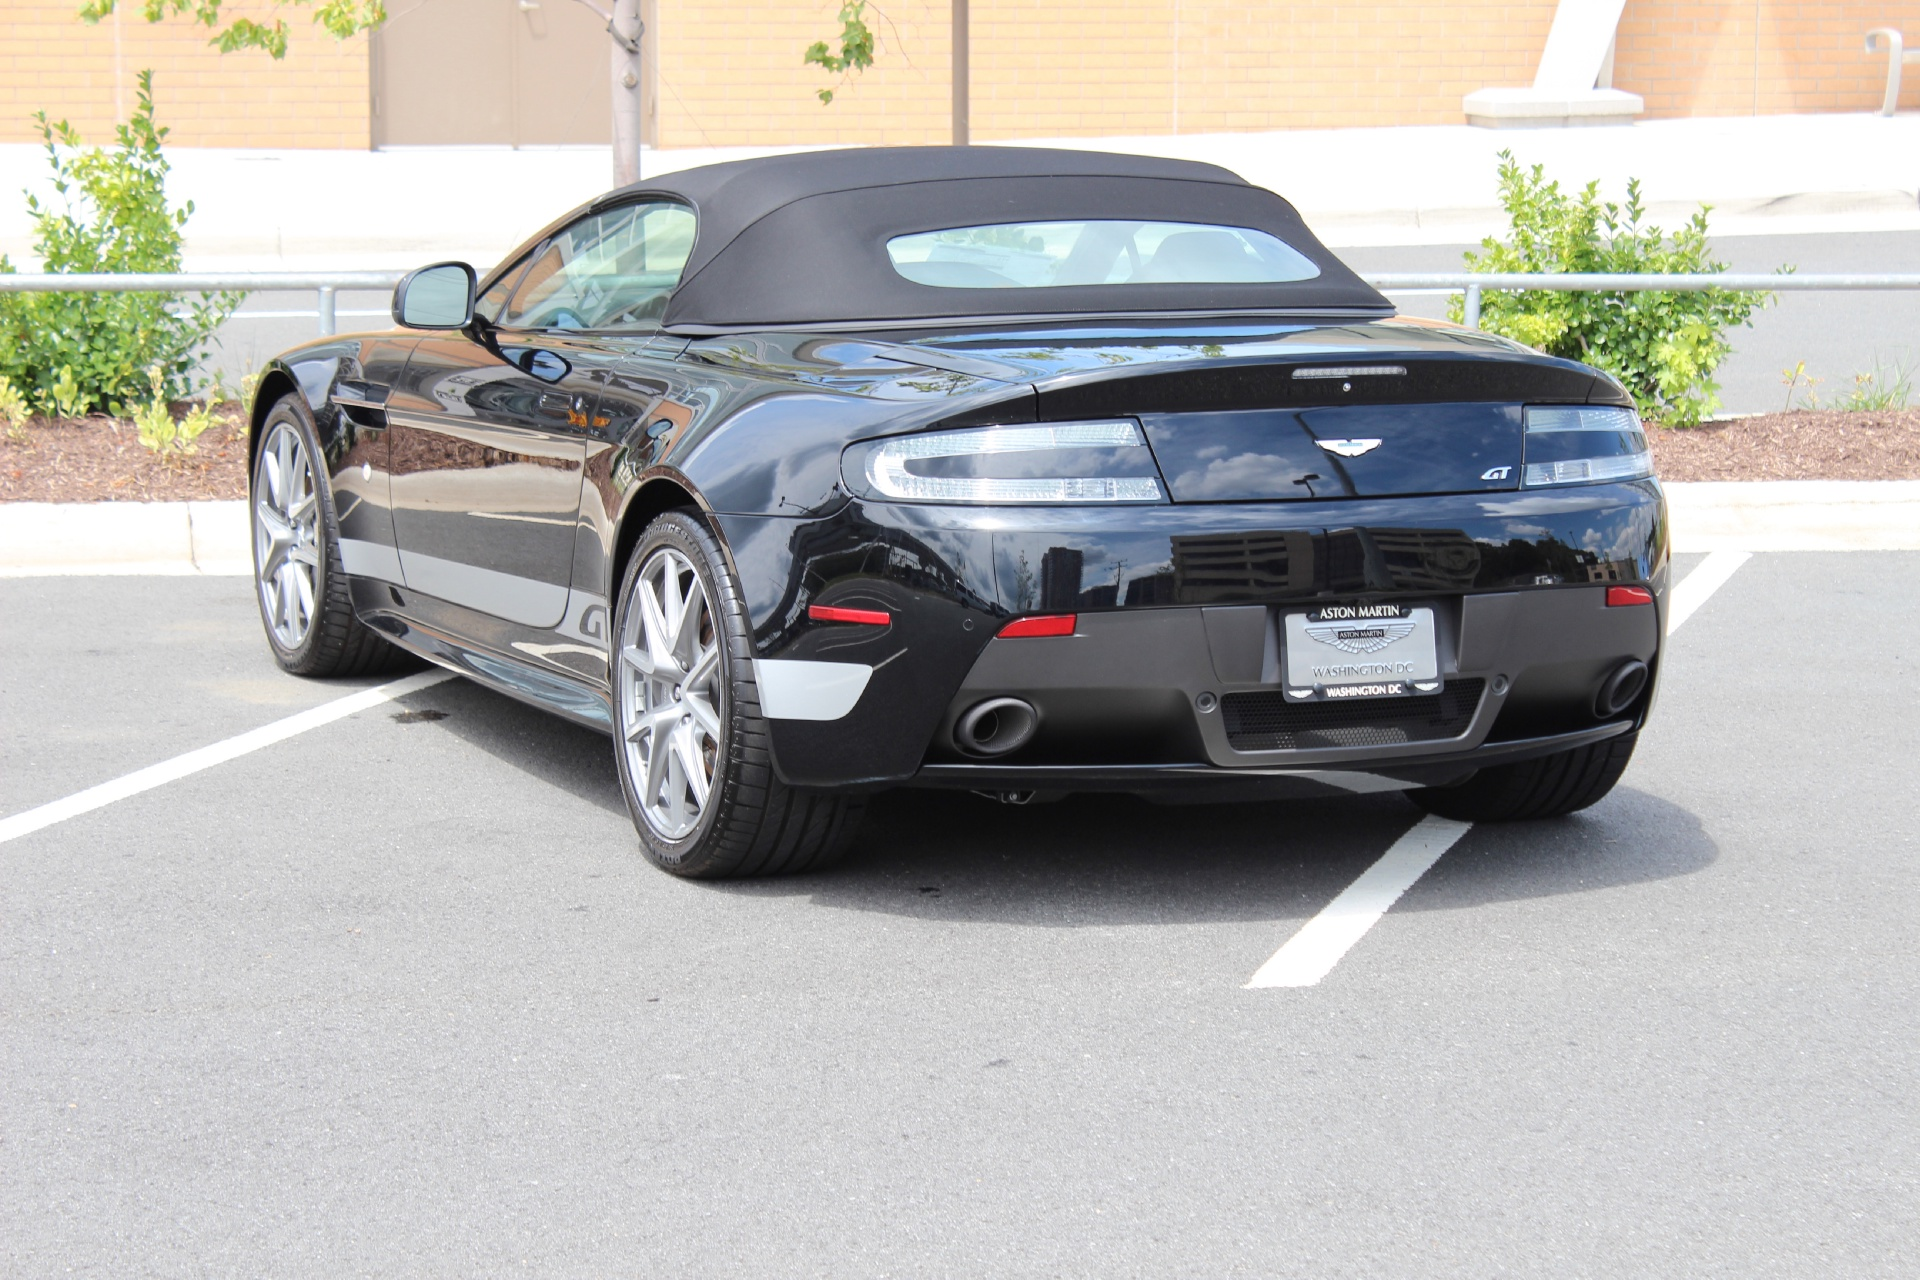 2019 Aston Martin V8 Vantage GT Roadster photo - 3